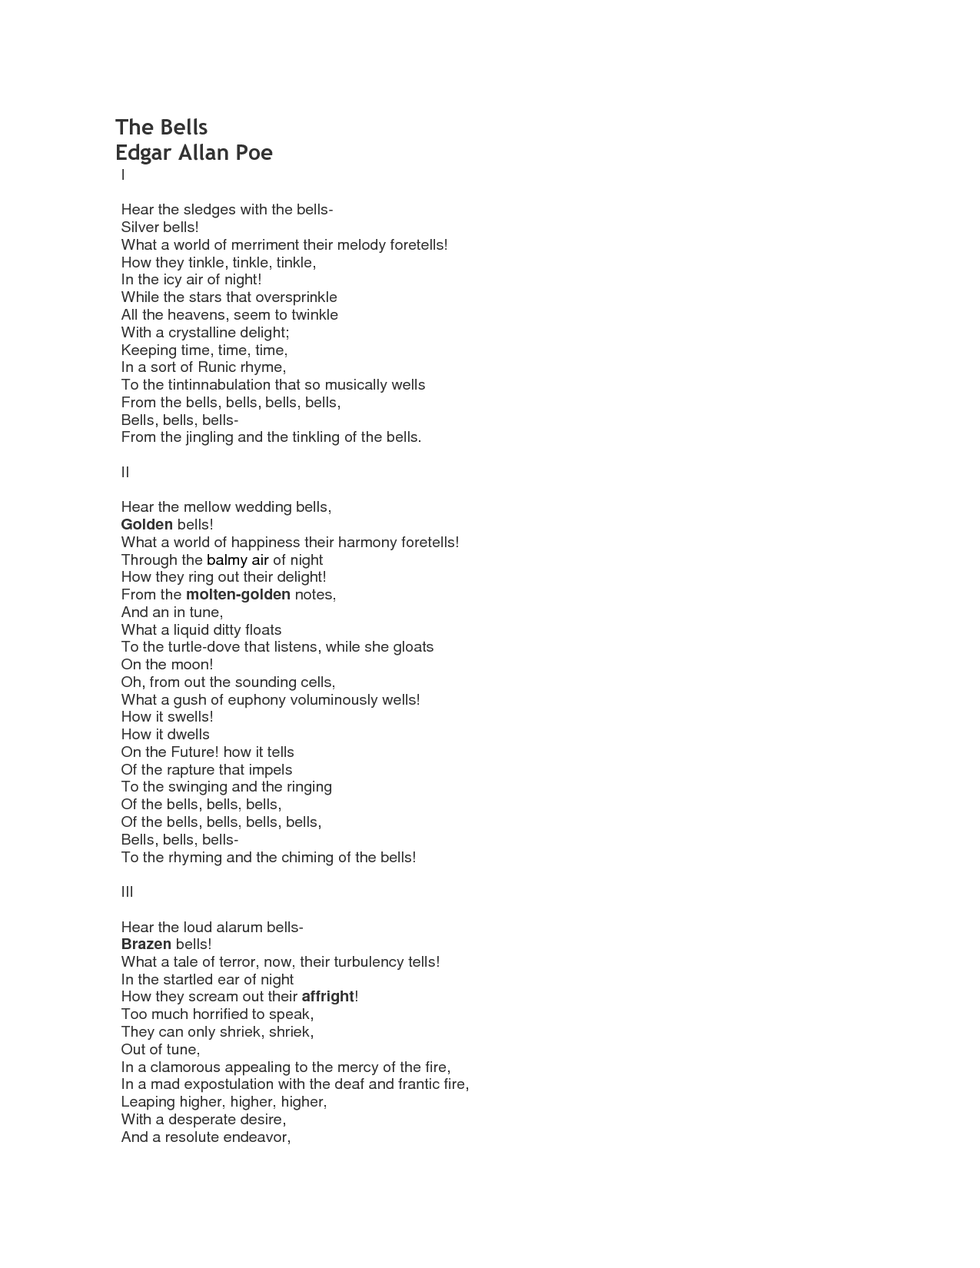 An Analysis Of The Poem The Bells By Edgar Allan Poe